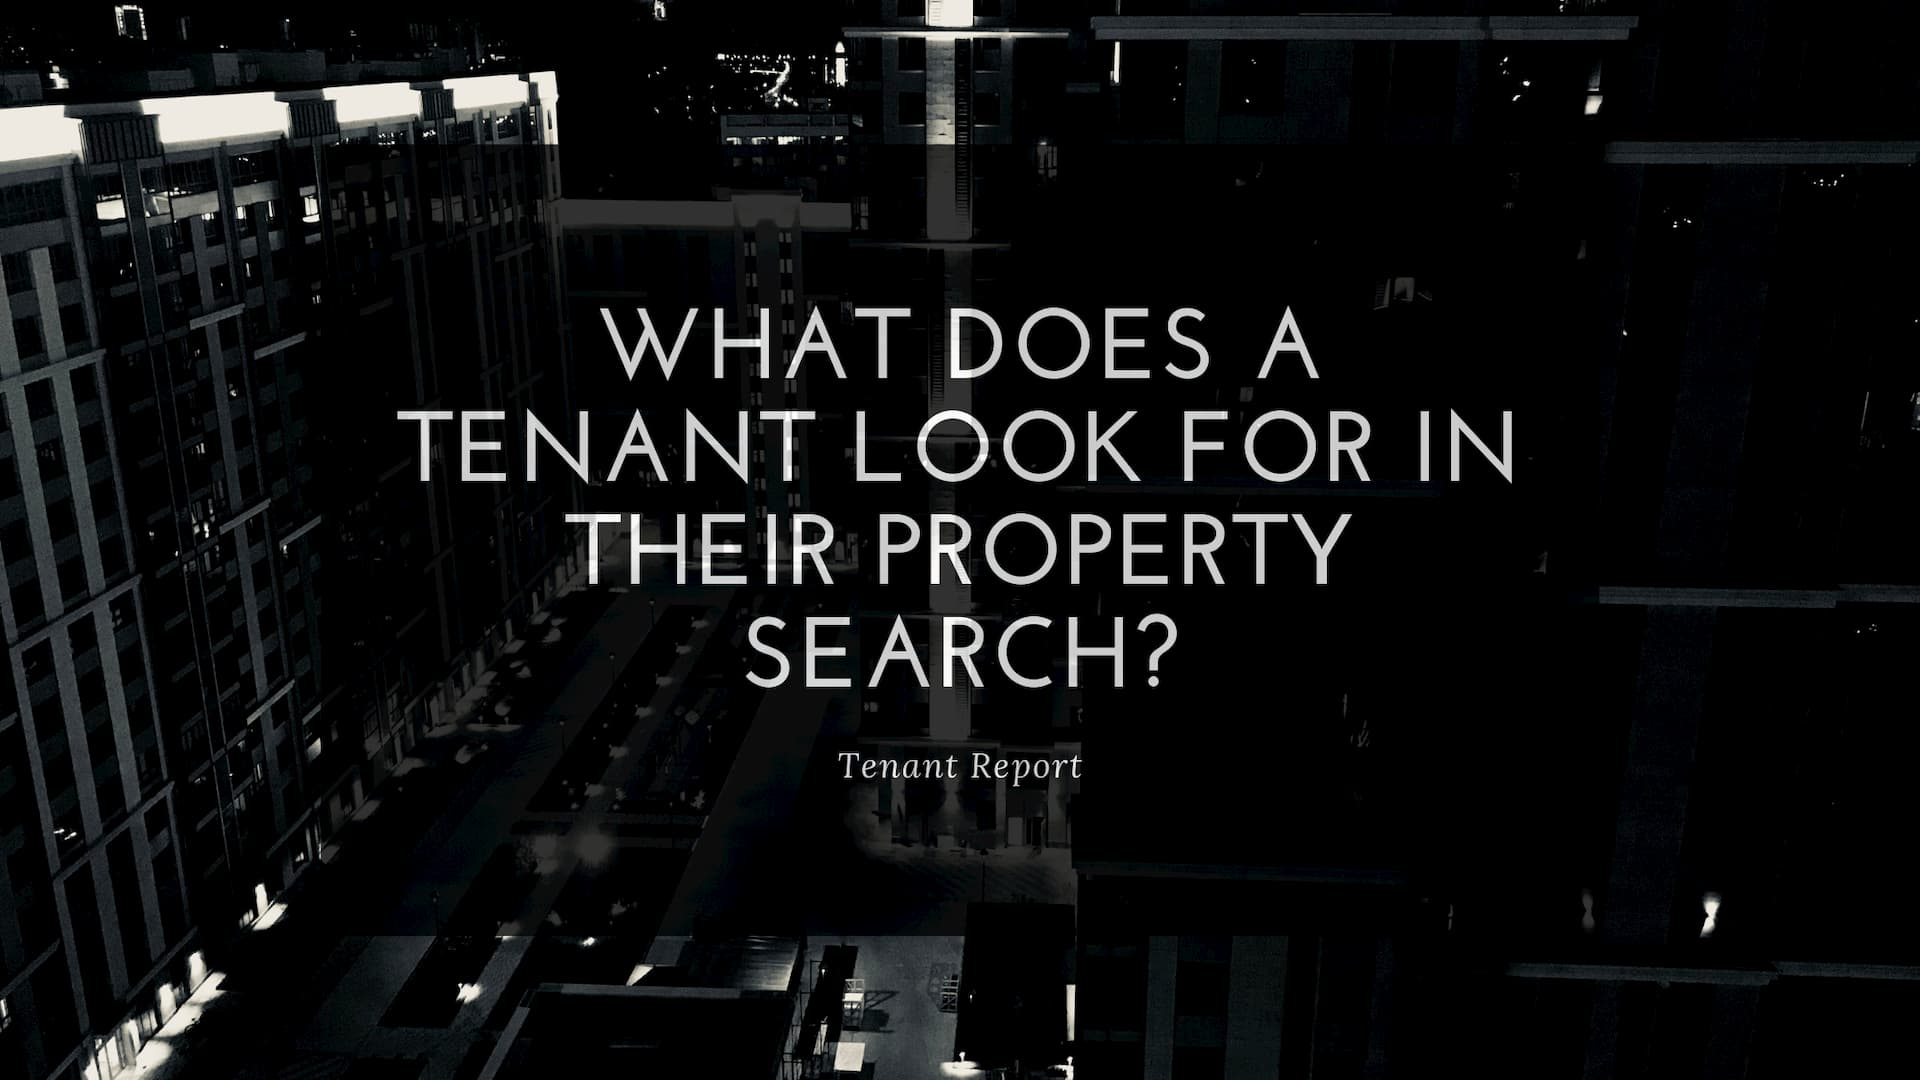 Tenant-Report-What-Does-A-Tenant-Look-For-in-their-Property-Search